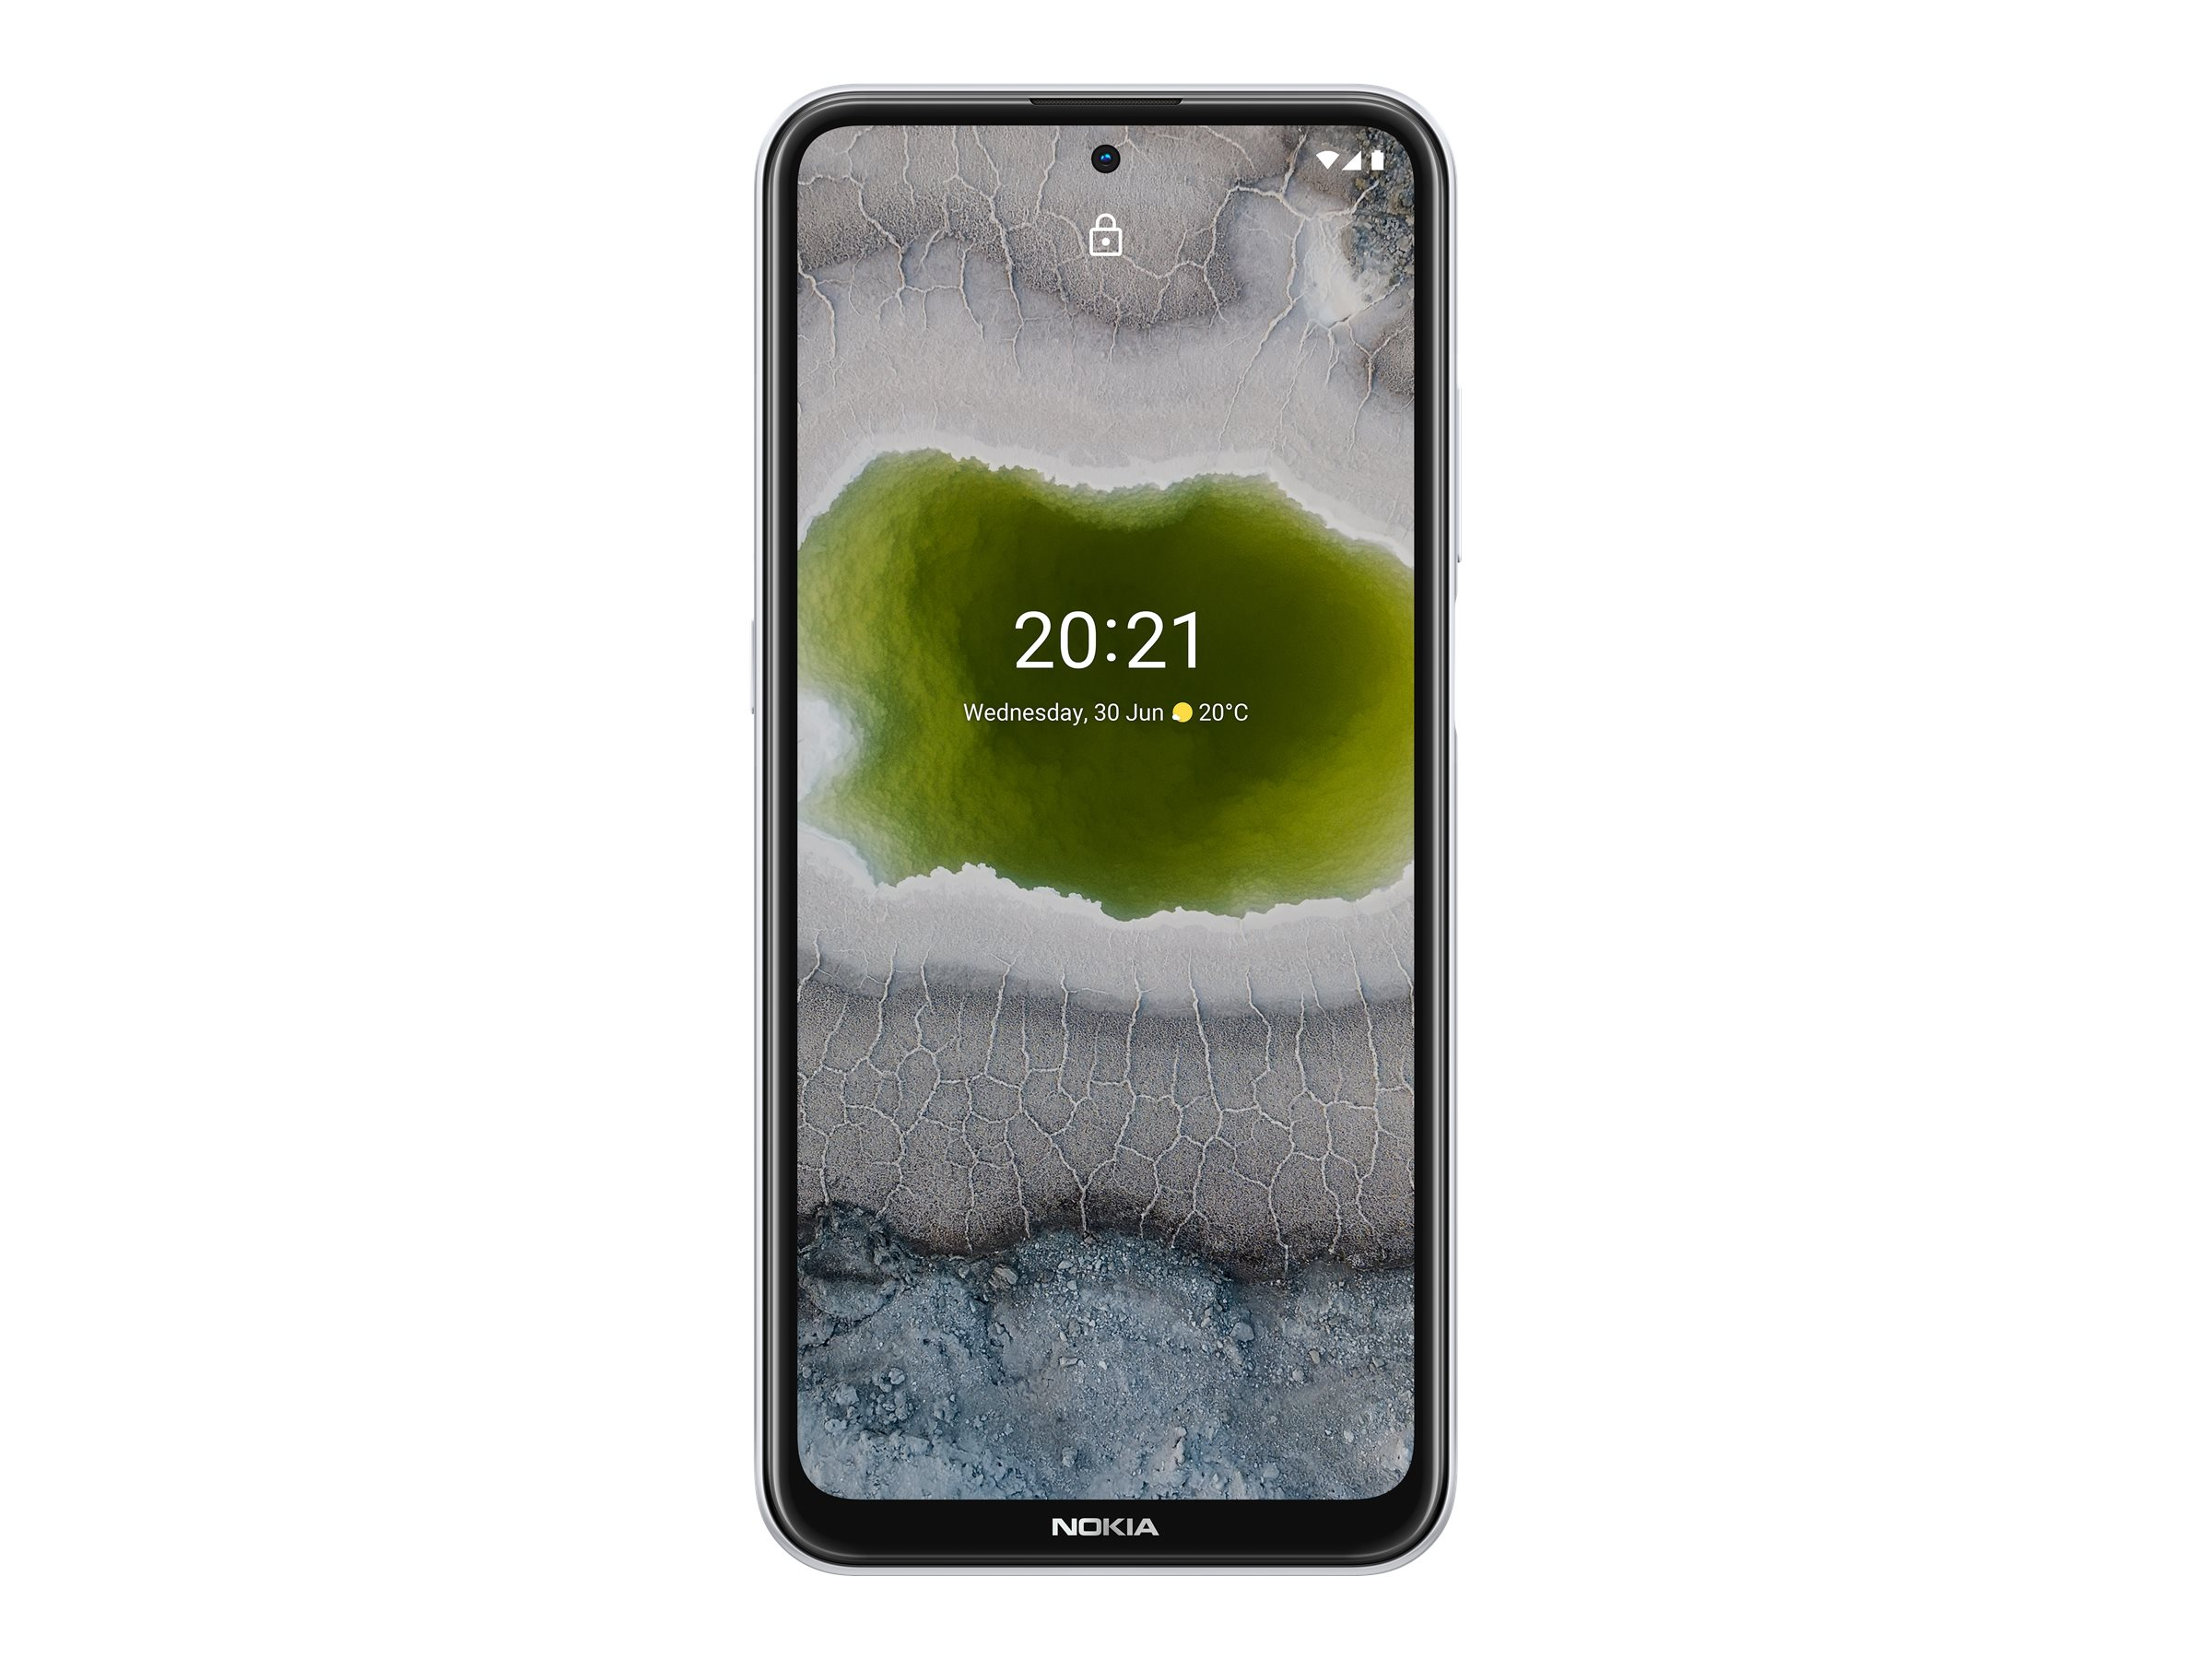 Nokia X10 - Android One - Smartphone - Dual-SIM